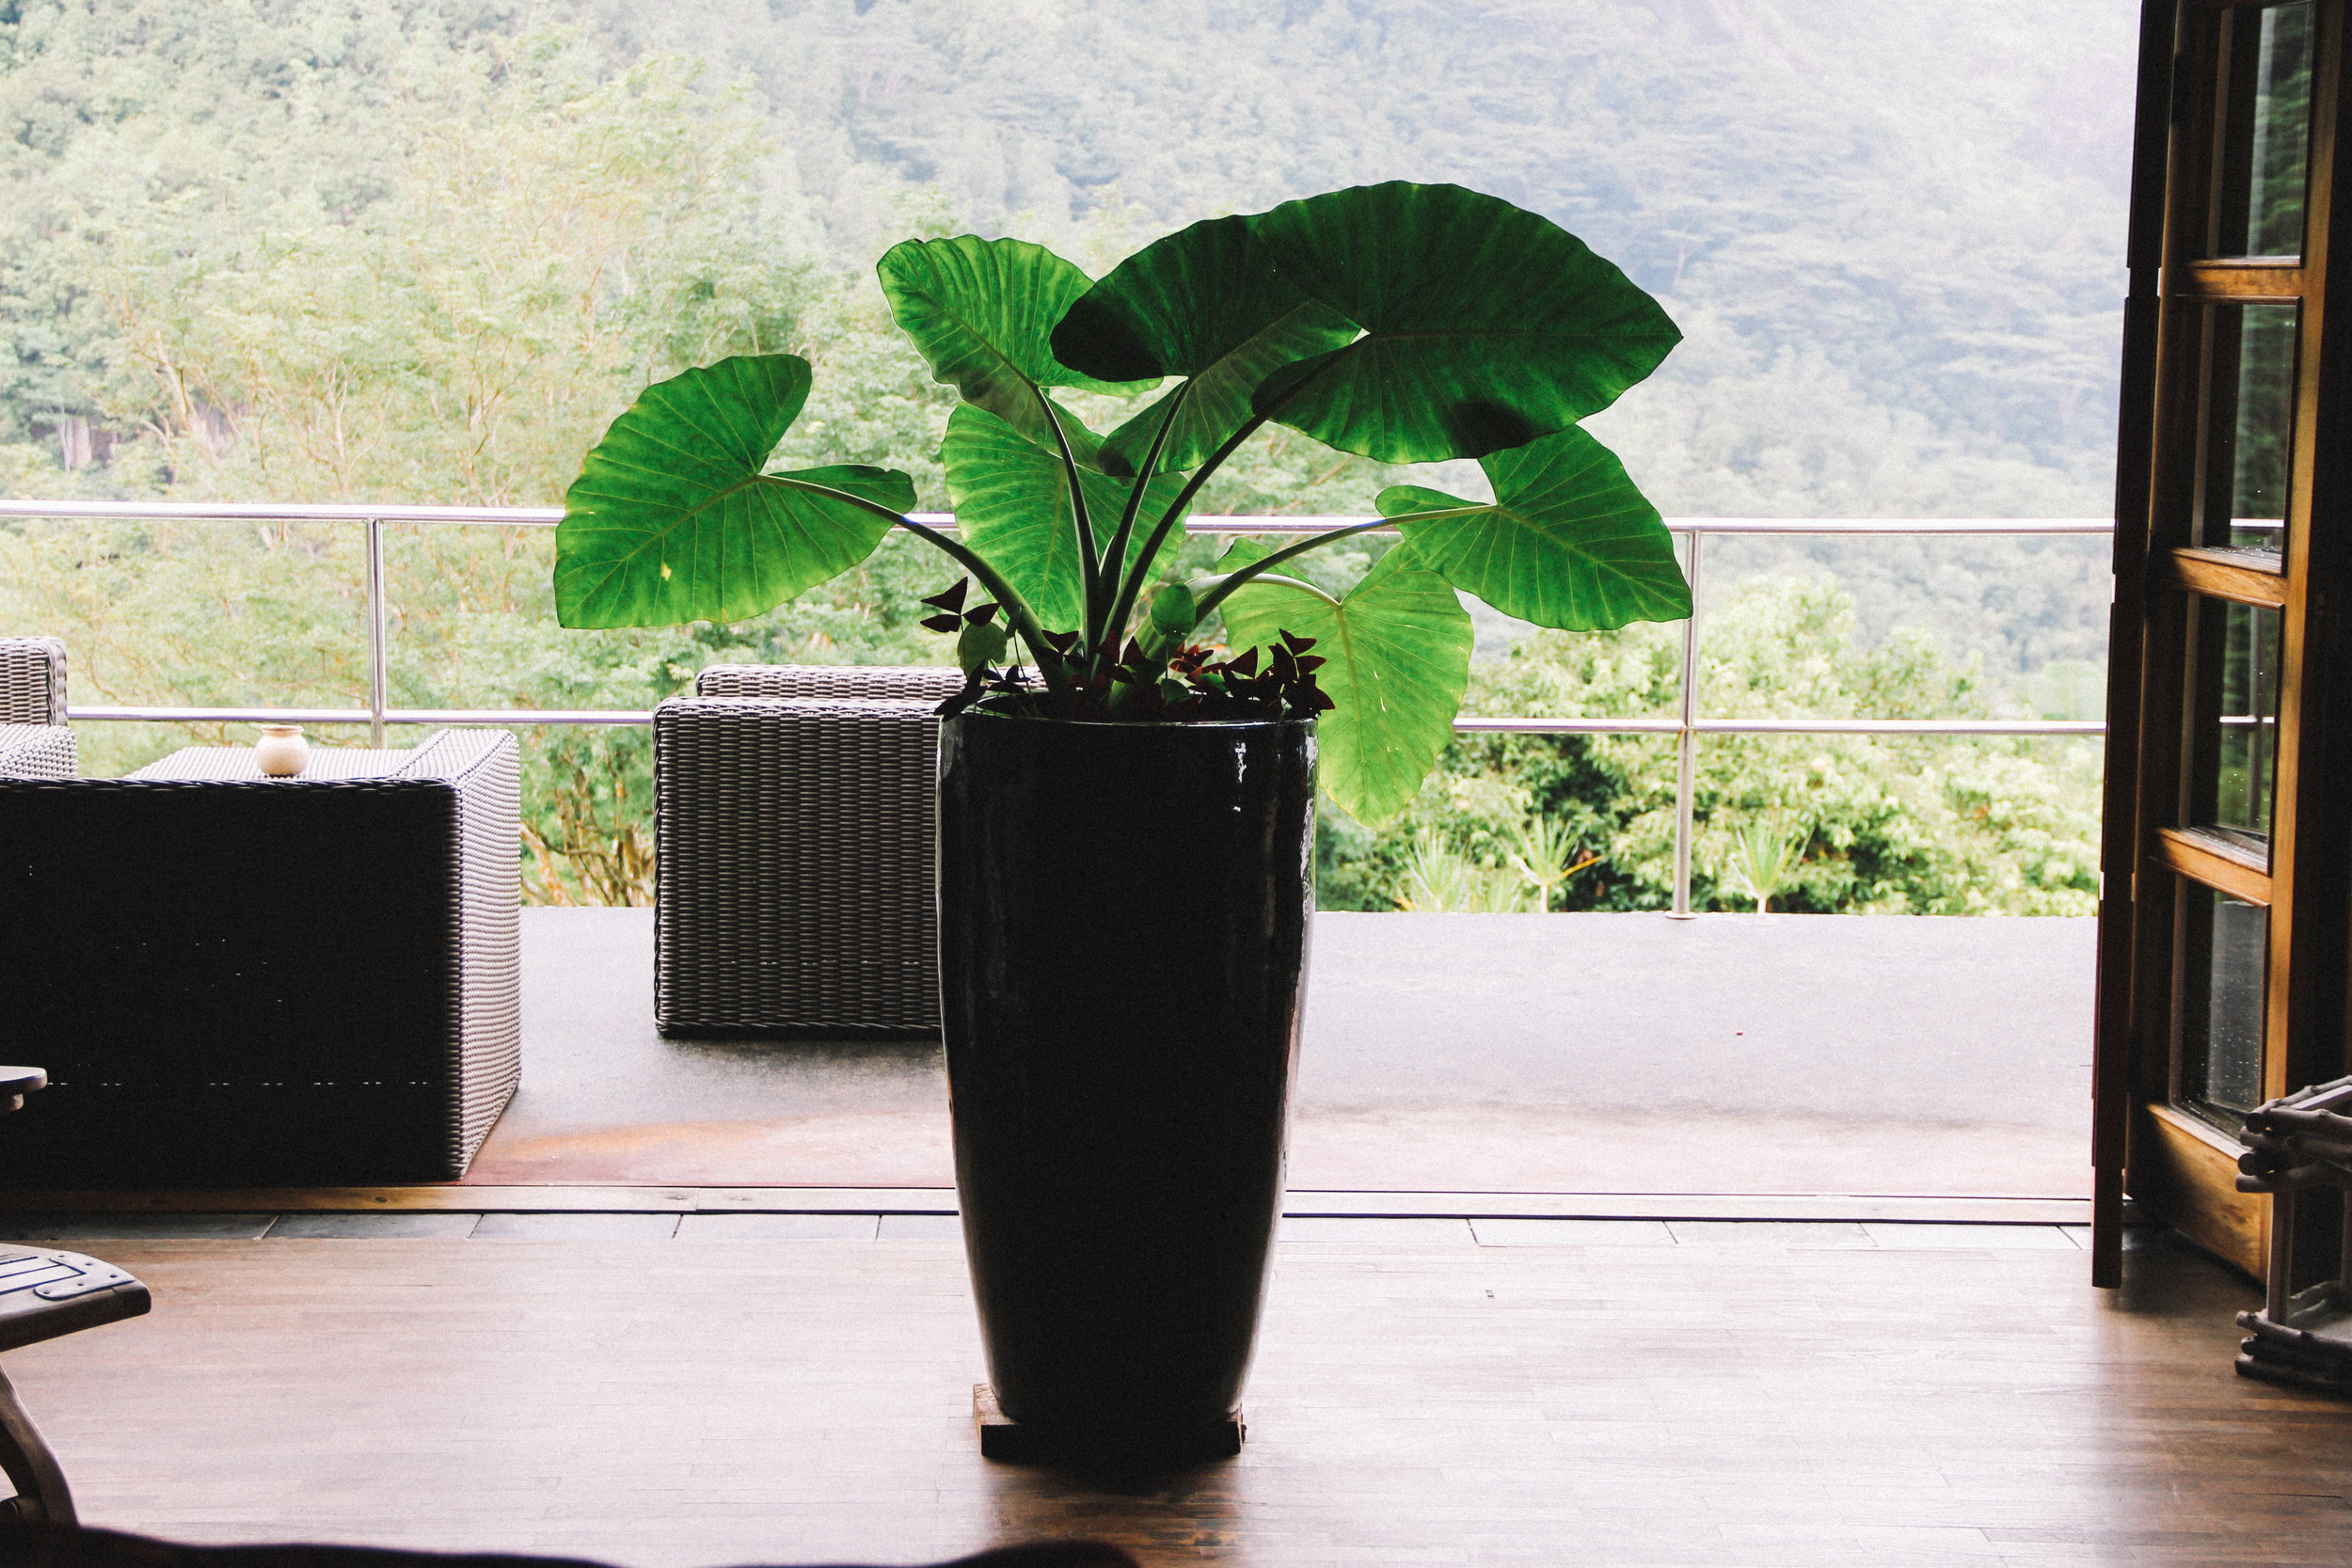 A happy house plant at Copolia Lodge in Mahe, Seychelles